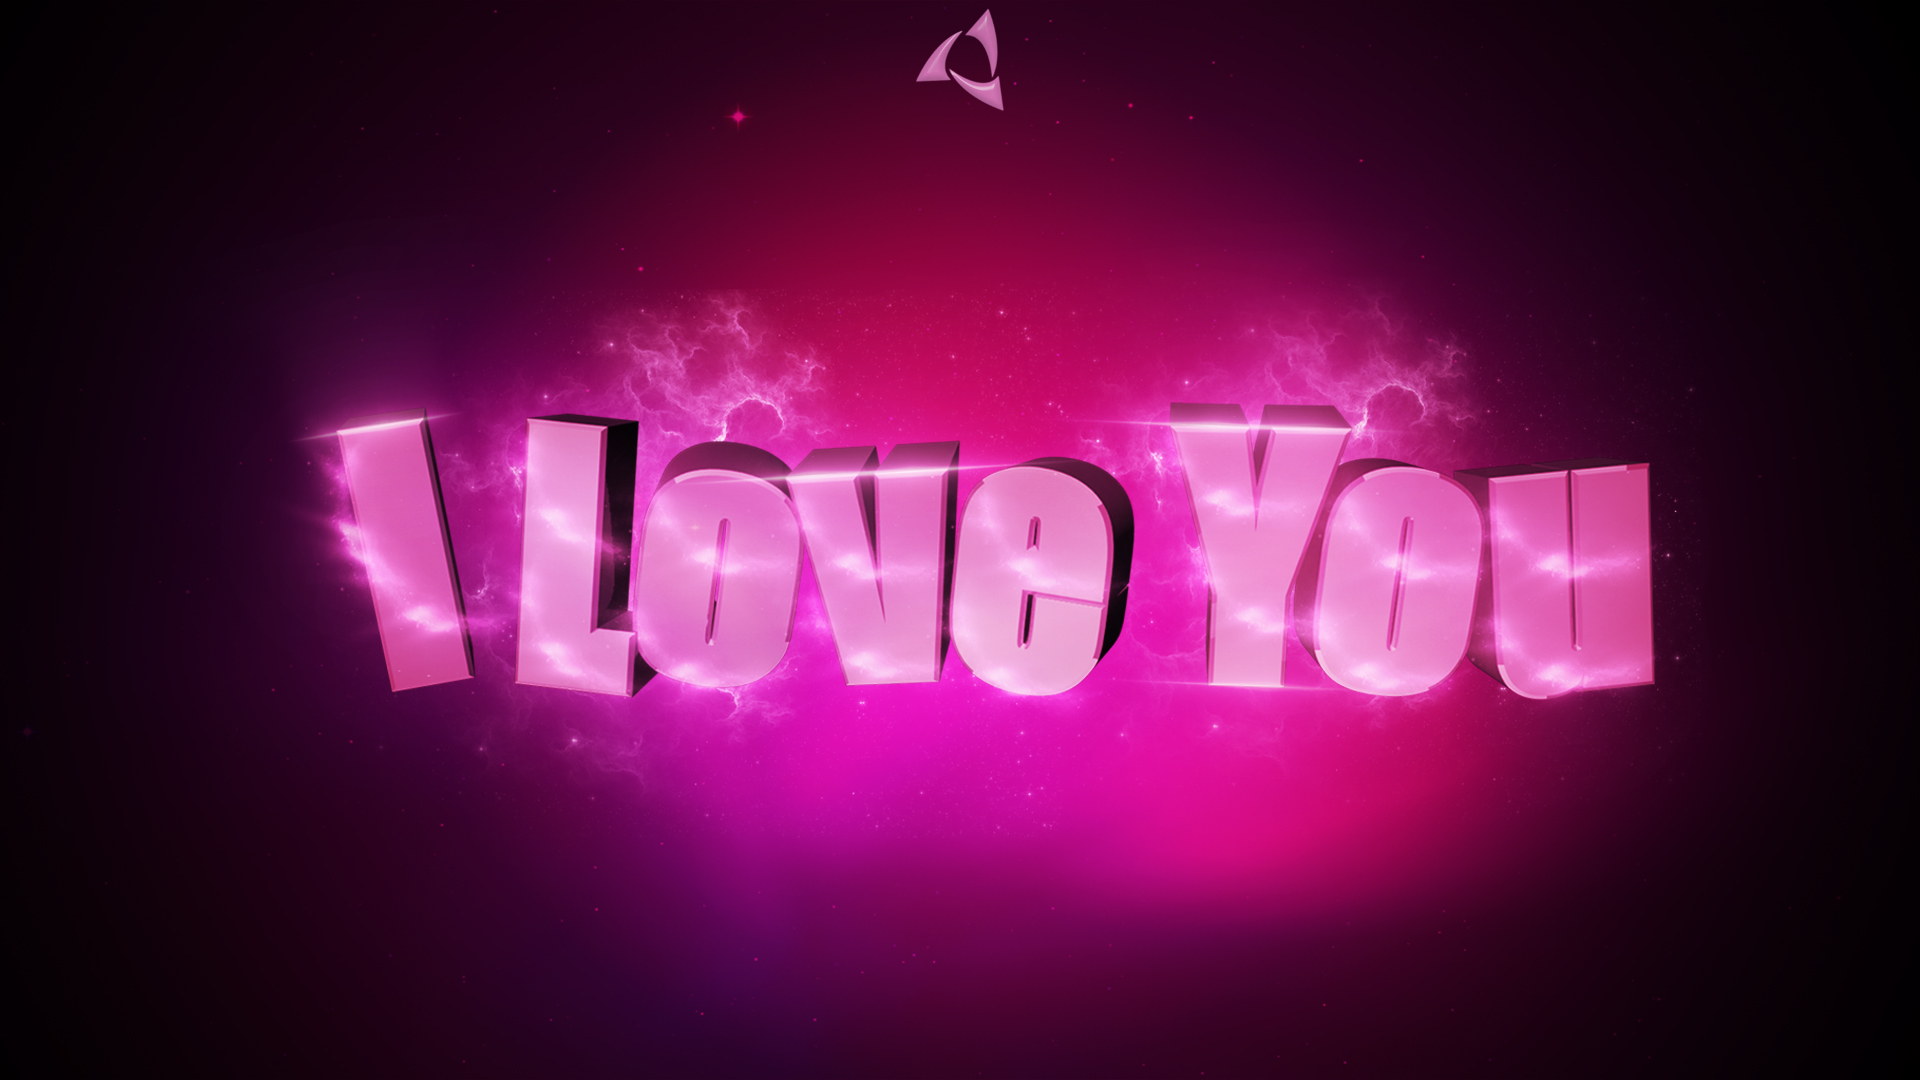 Wallpapers For Mobile I Love You : I Love You WallPaper by SilenceMakerHD on DeviantArt